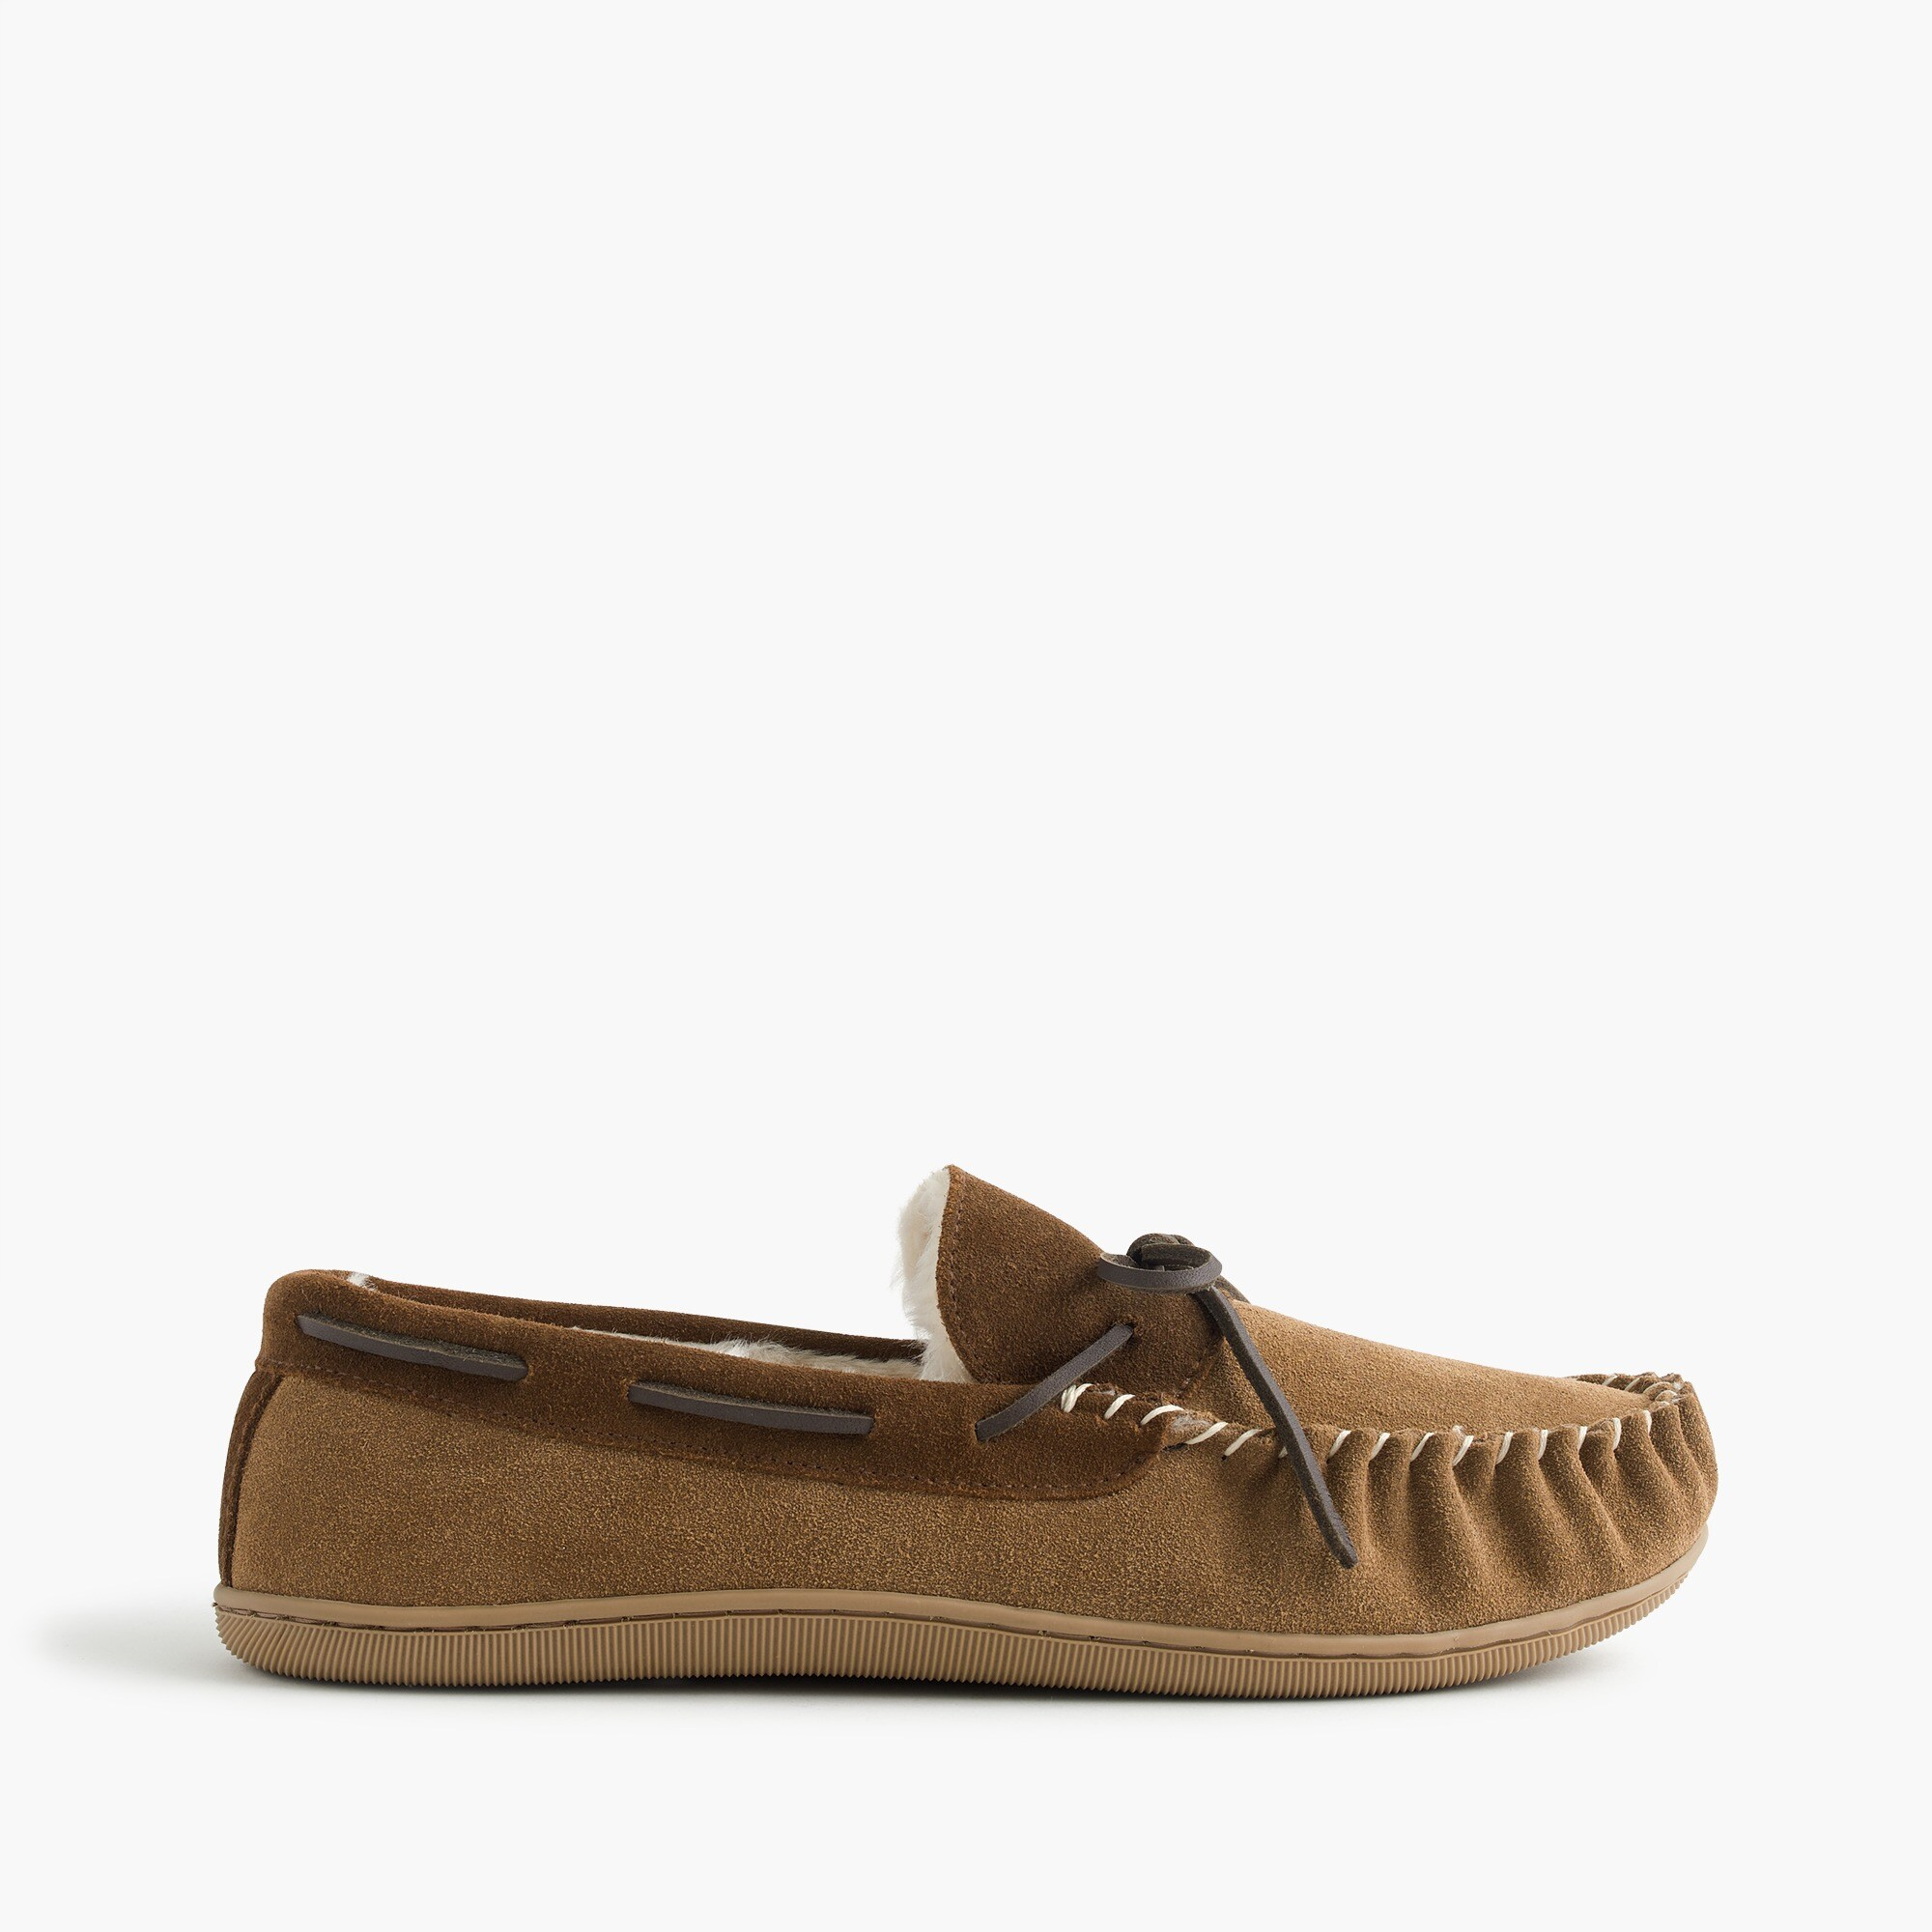 Image 1 for Classic suede moccasin slippers